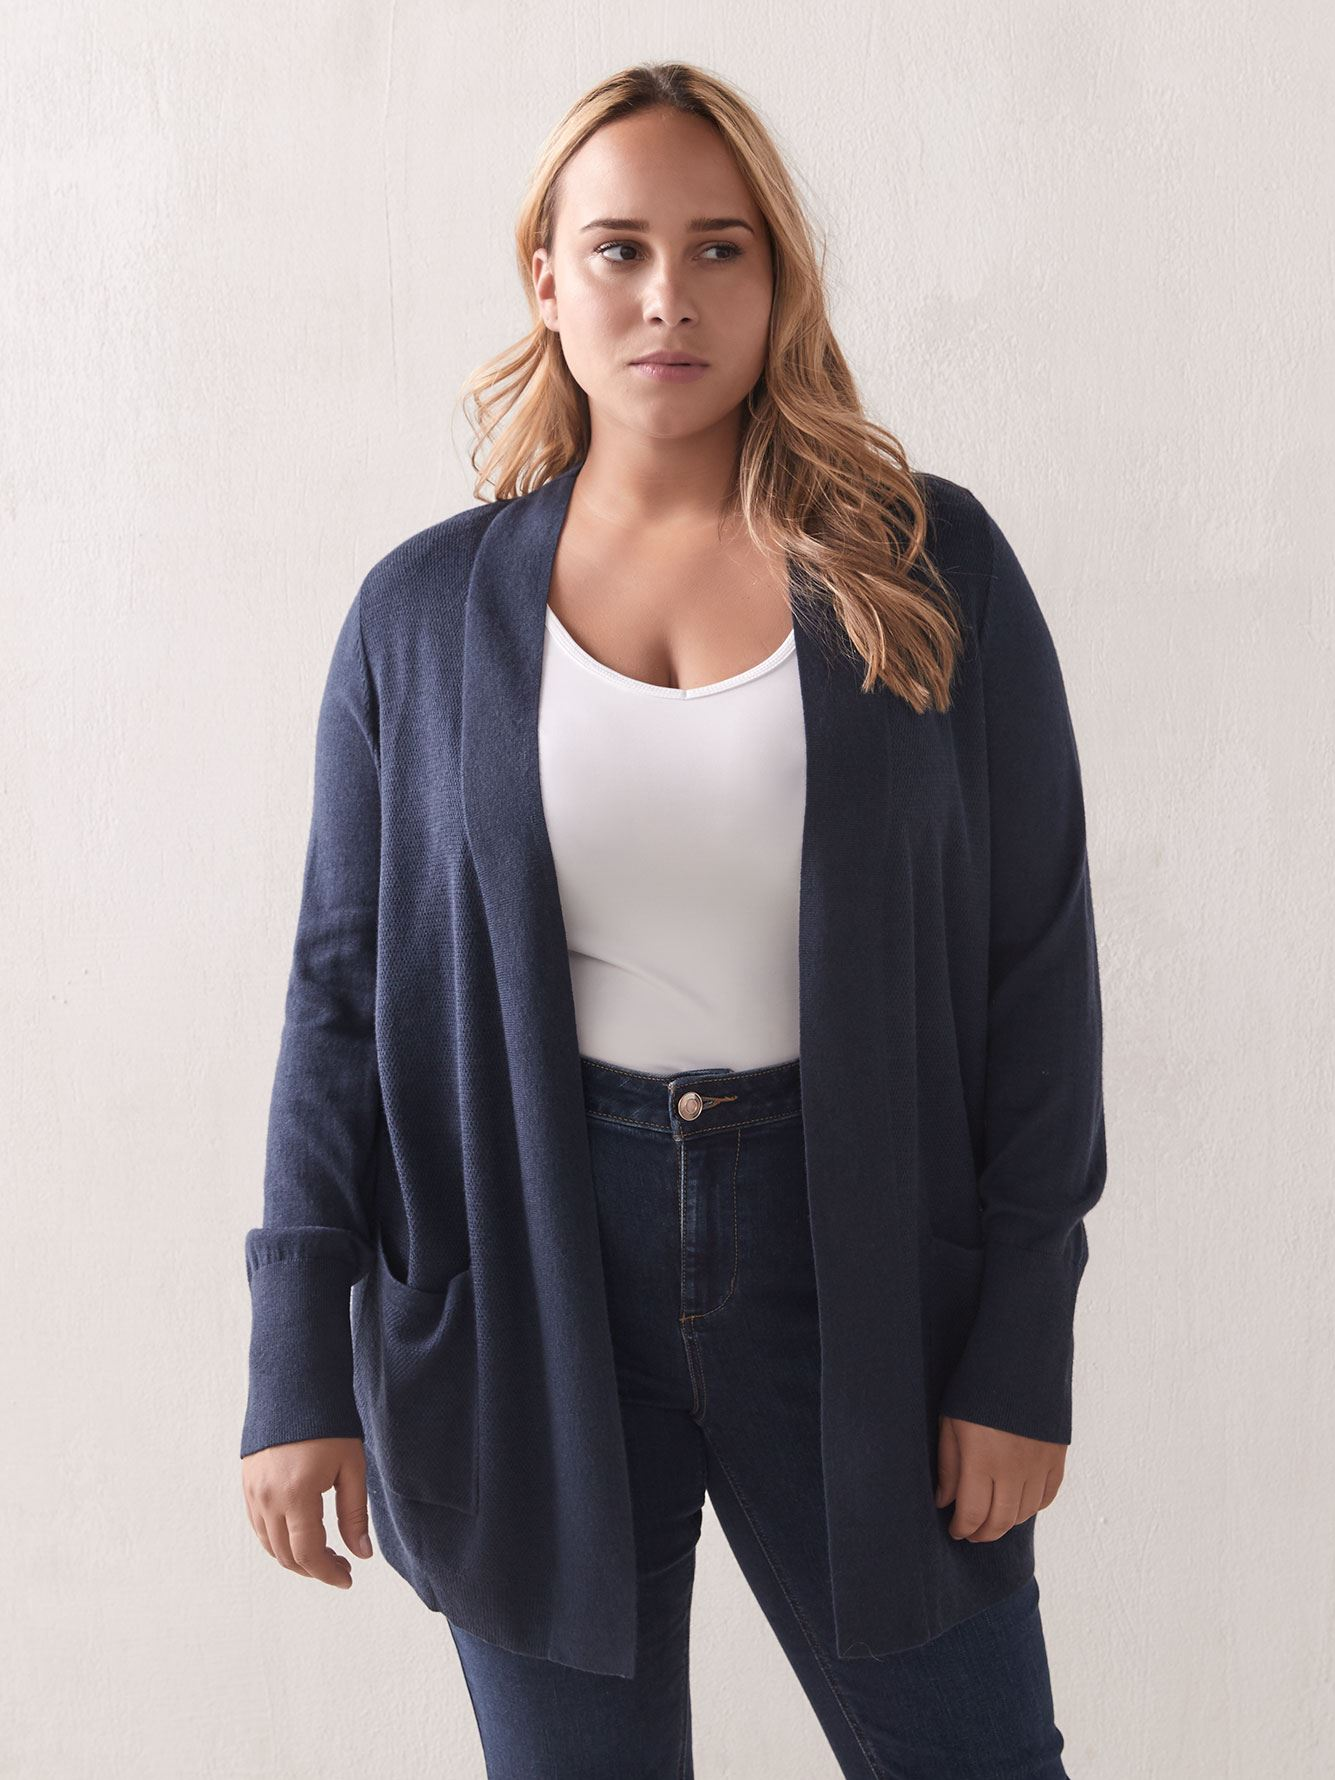 Edge To Edge Cardigan Sweater - Addition Elle